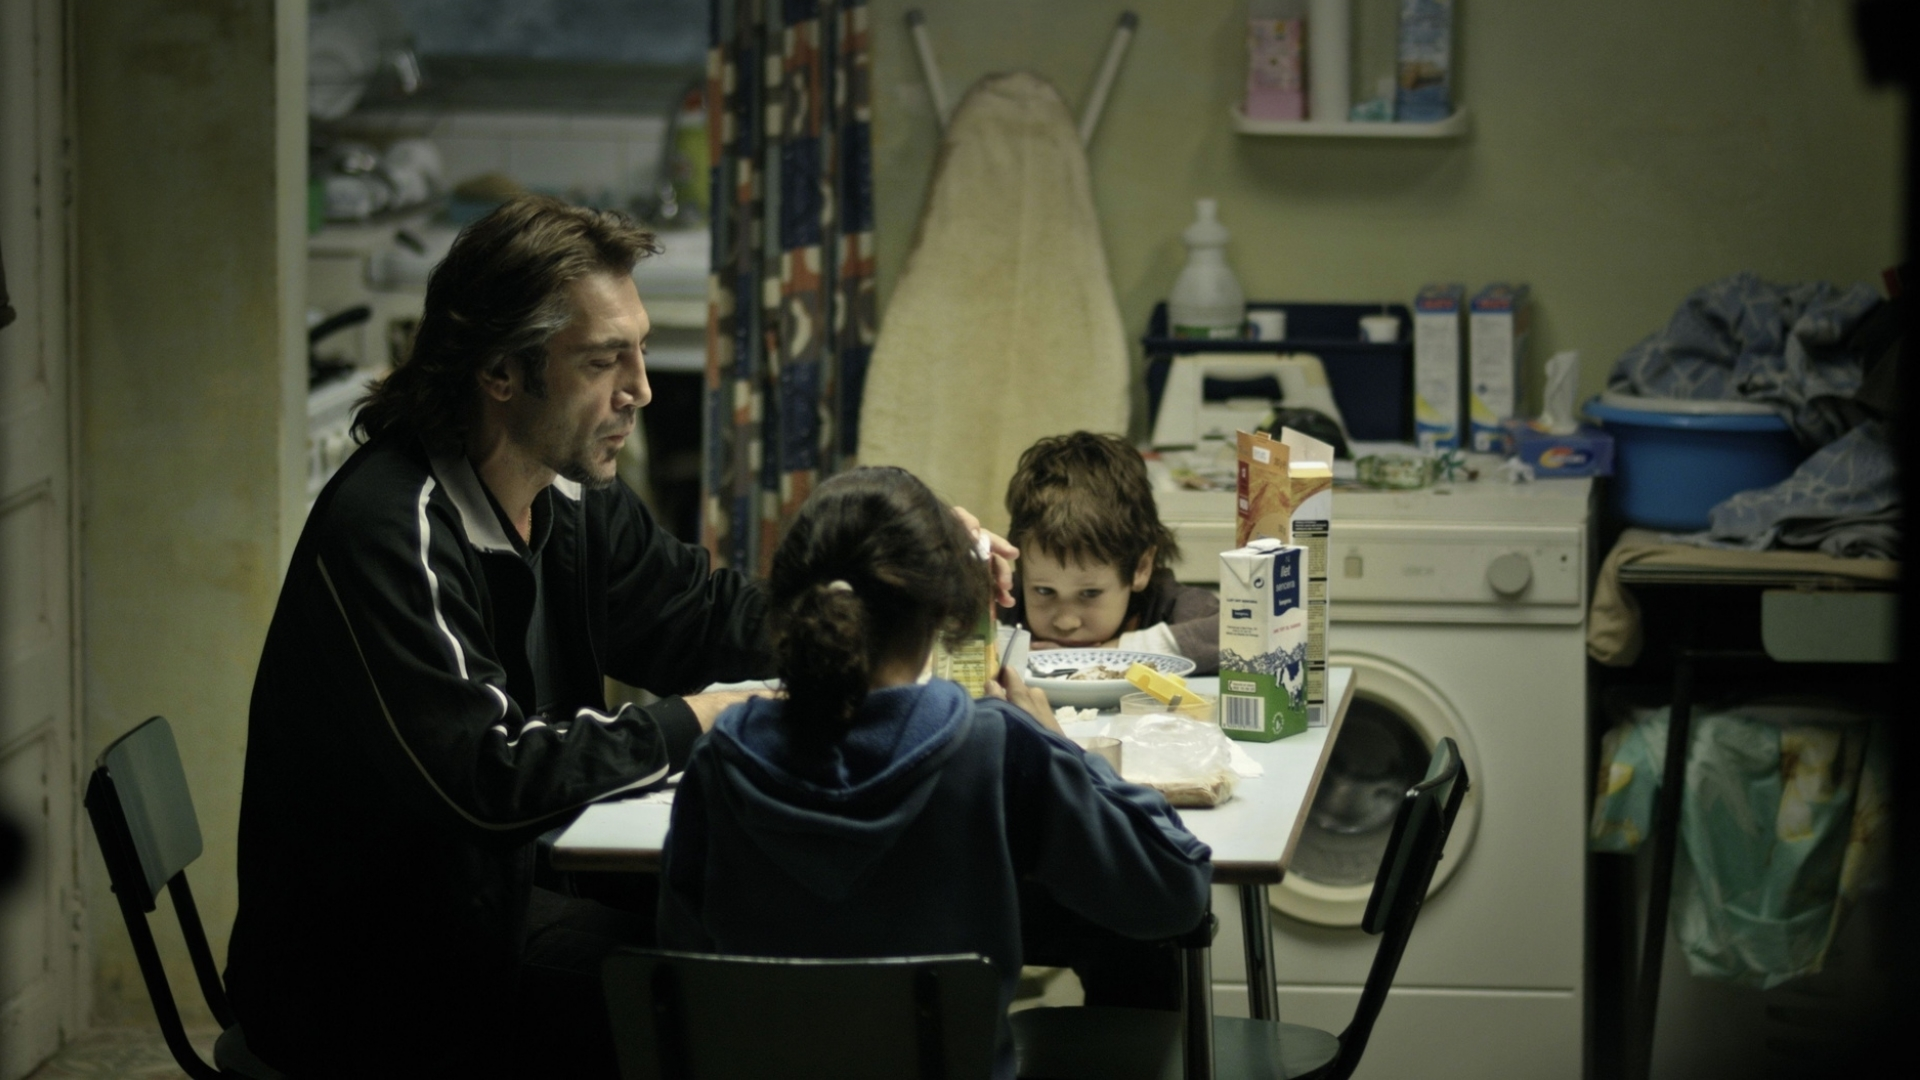 """Javier Bardem and two children, a girl and a boy, in a shot from the film """"Biutiful."""" They are seated around a table eating breakfast in a small, dingy room also used for washing laundry."""